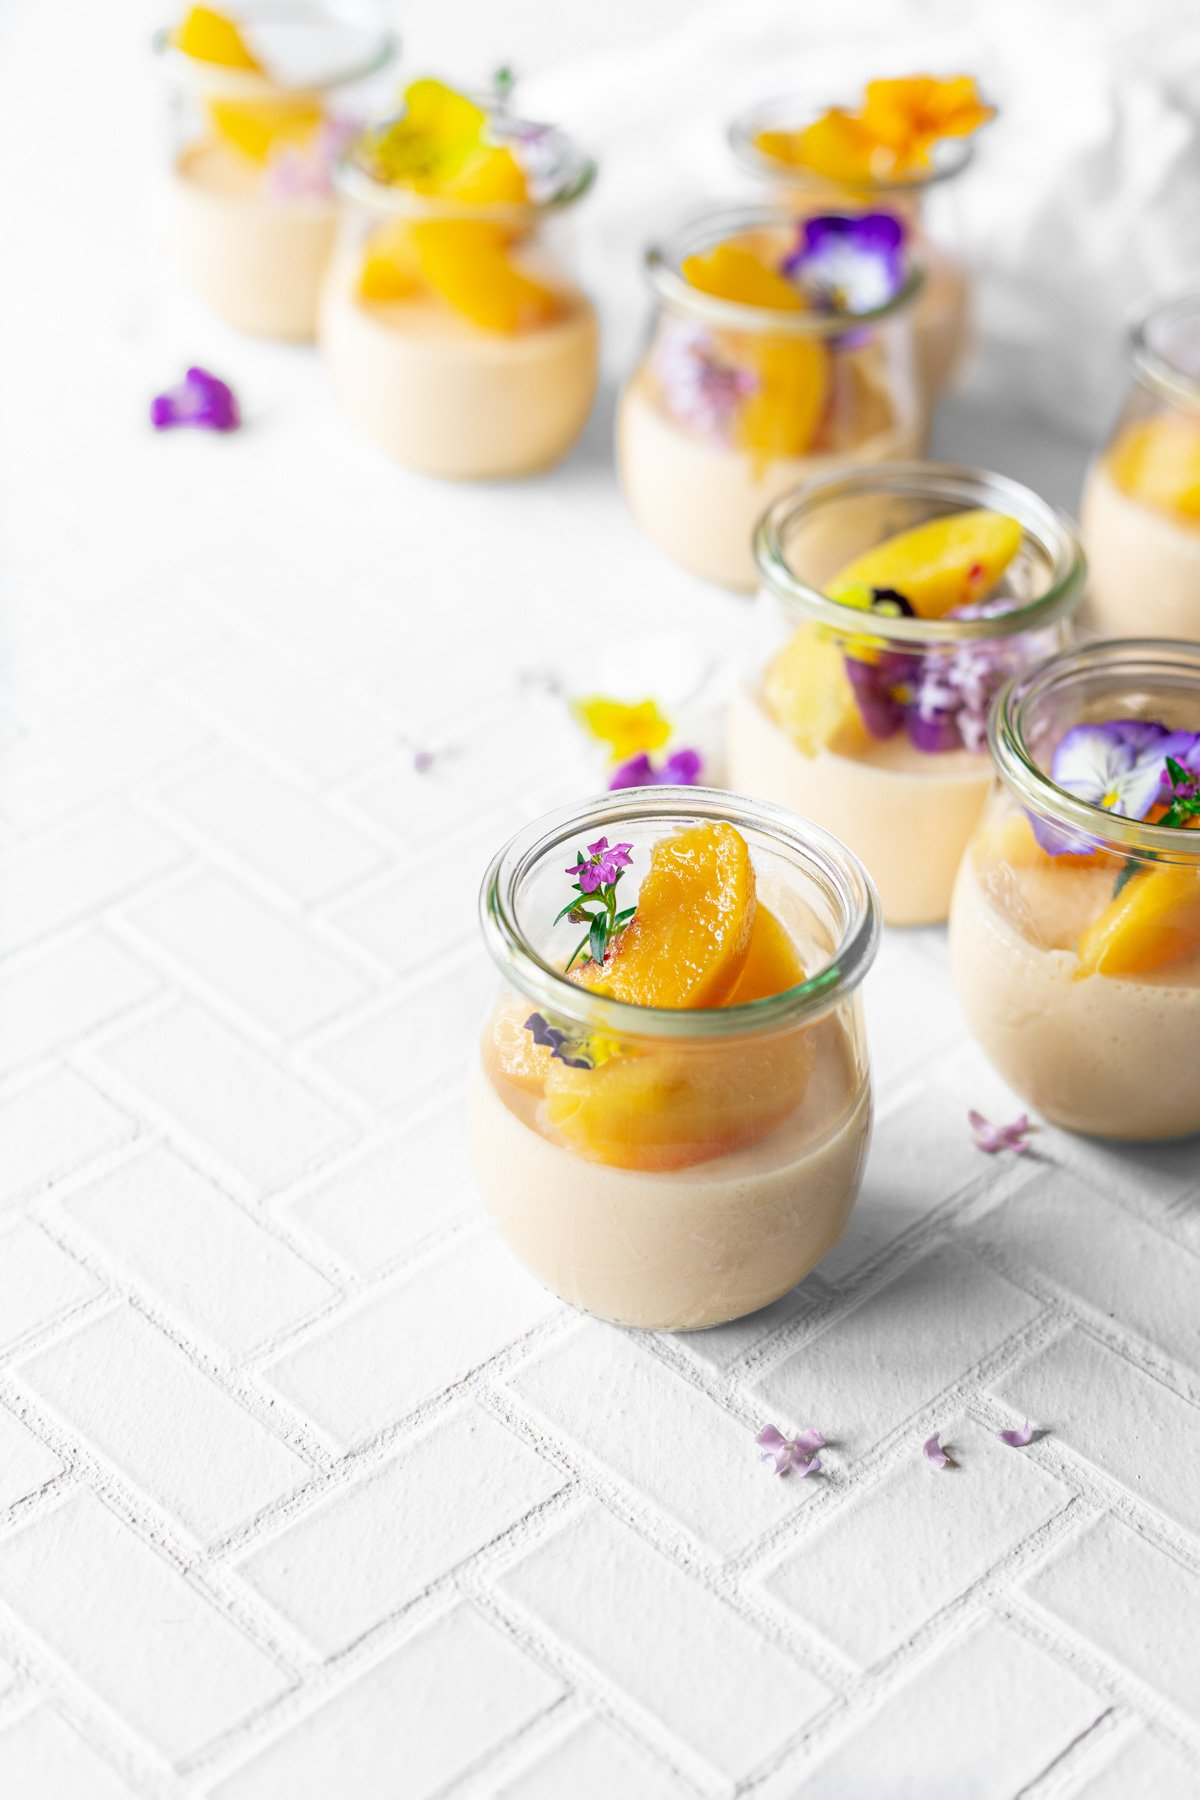 jars of peach jello salad with sliced peaches and edible flowers